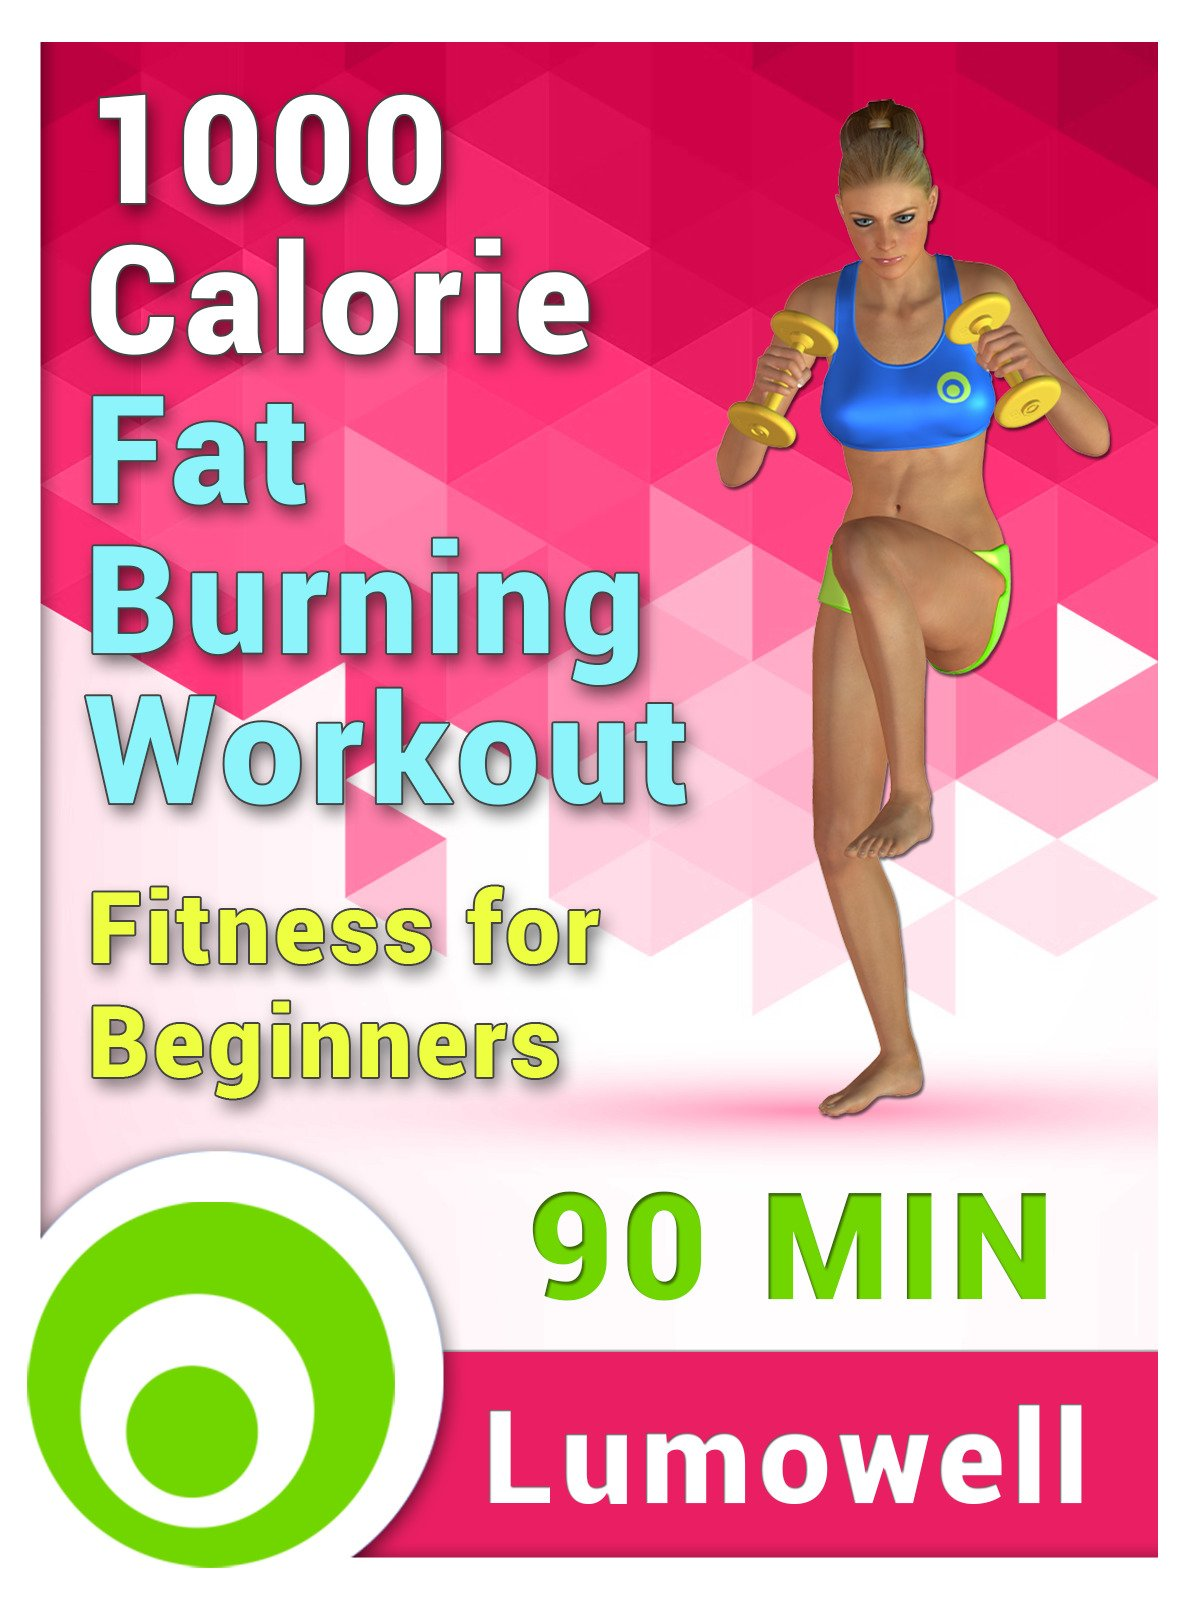 1000 Calorie Fat Burning Workout